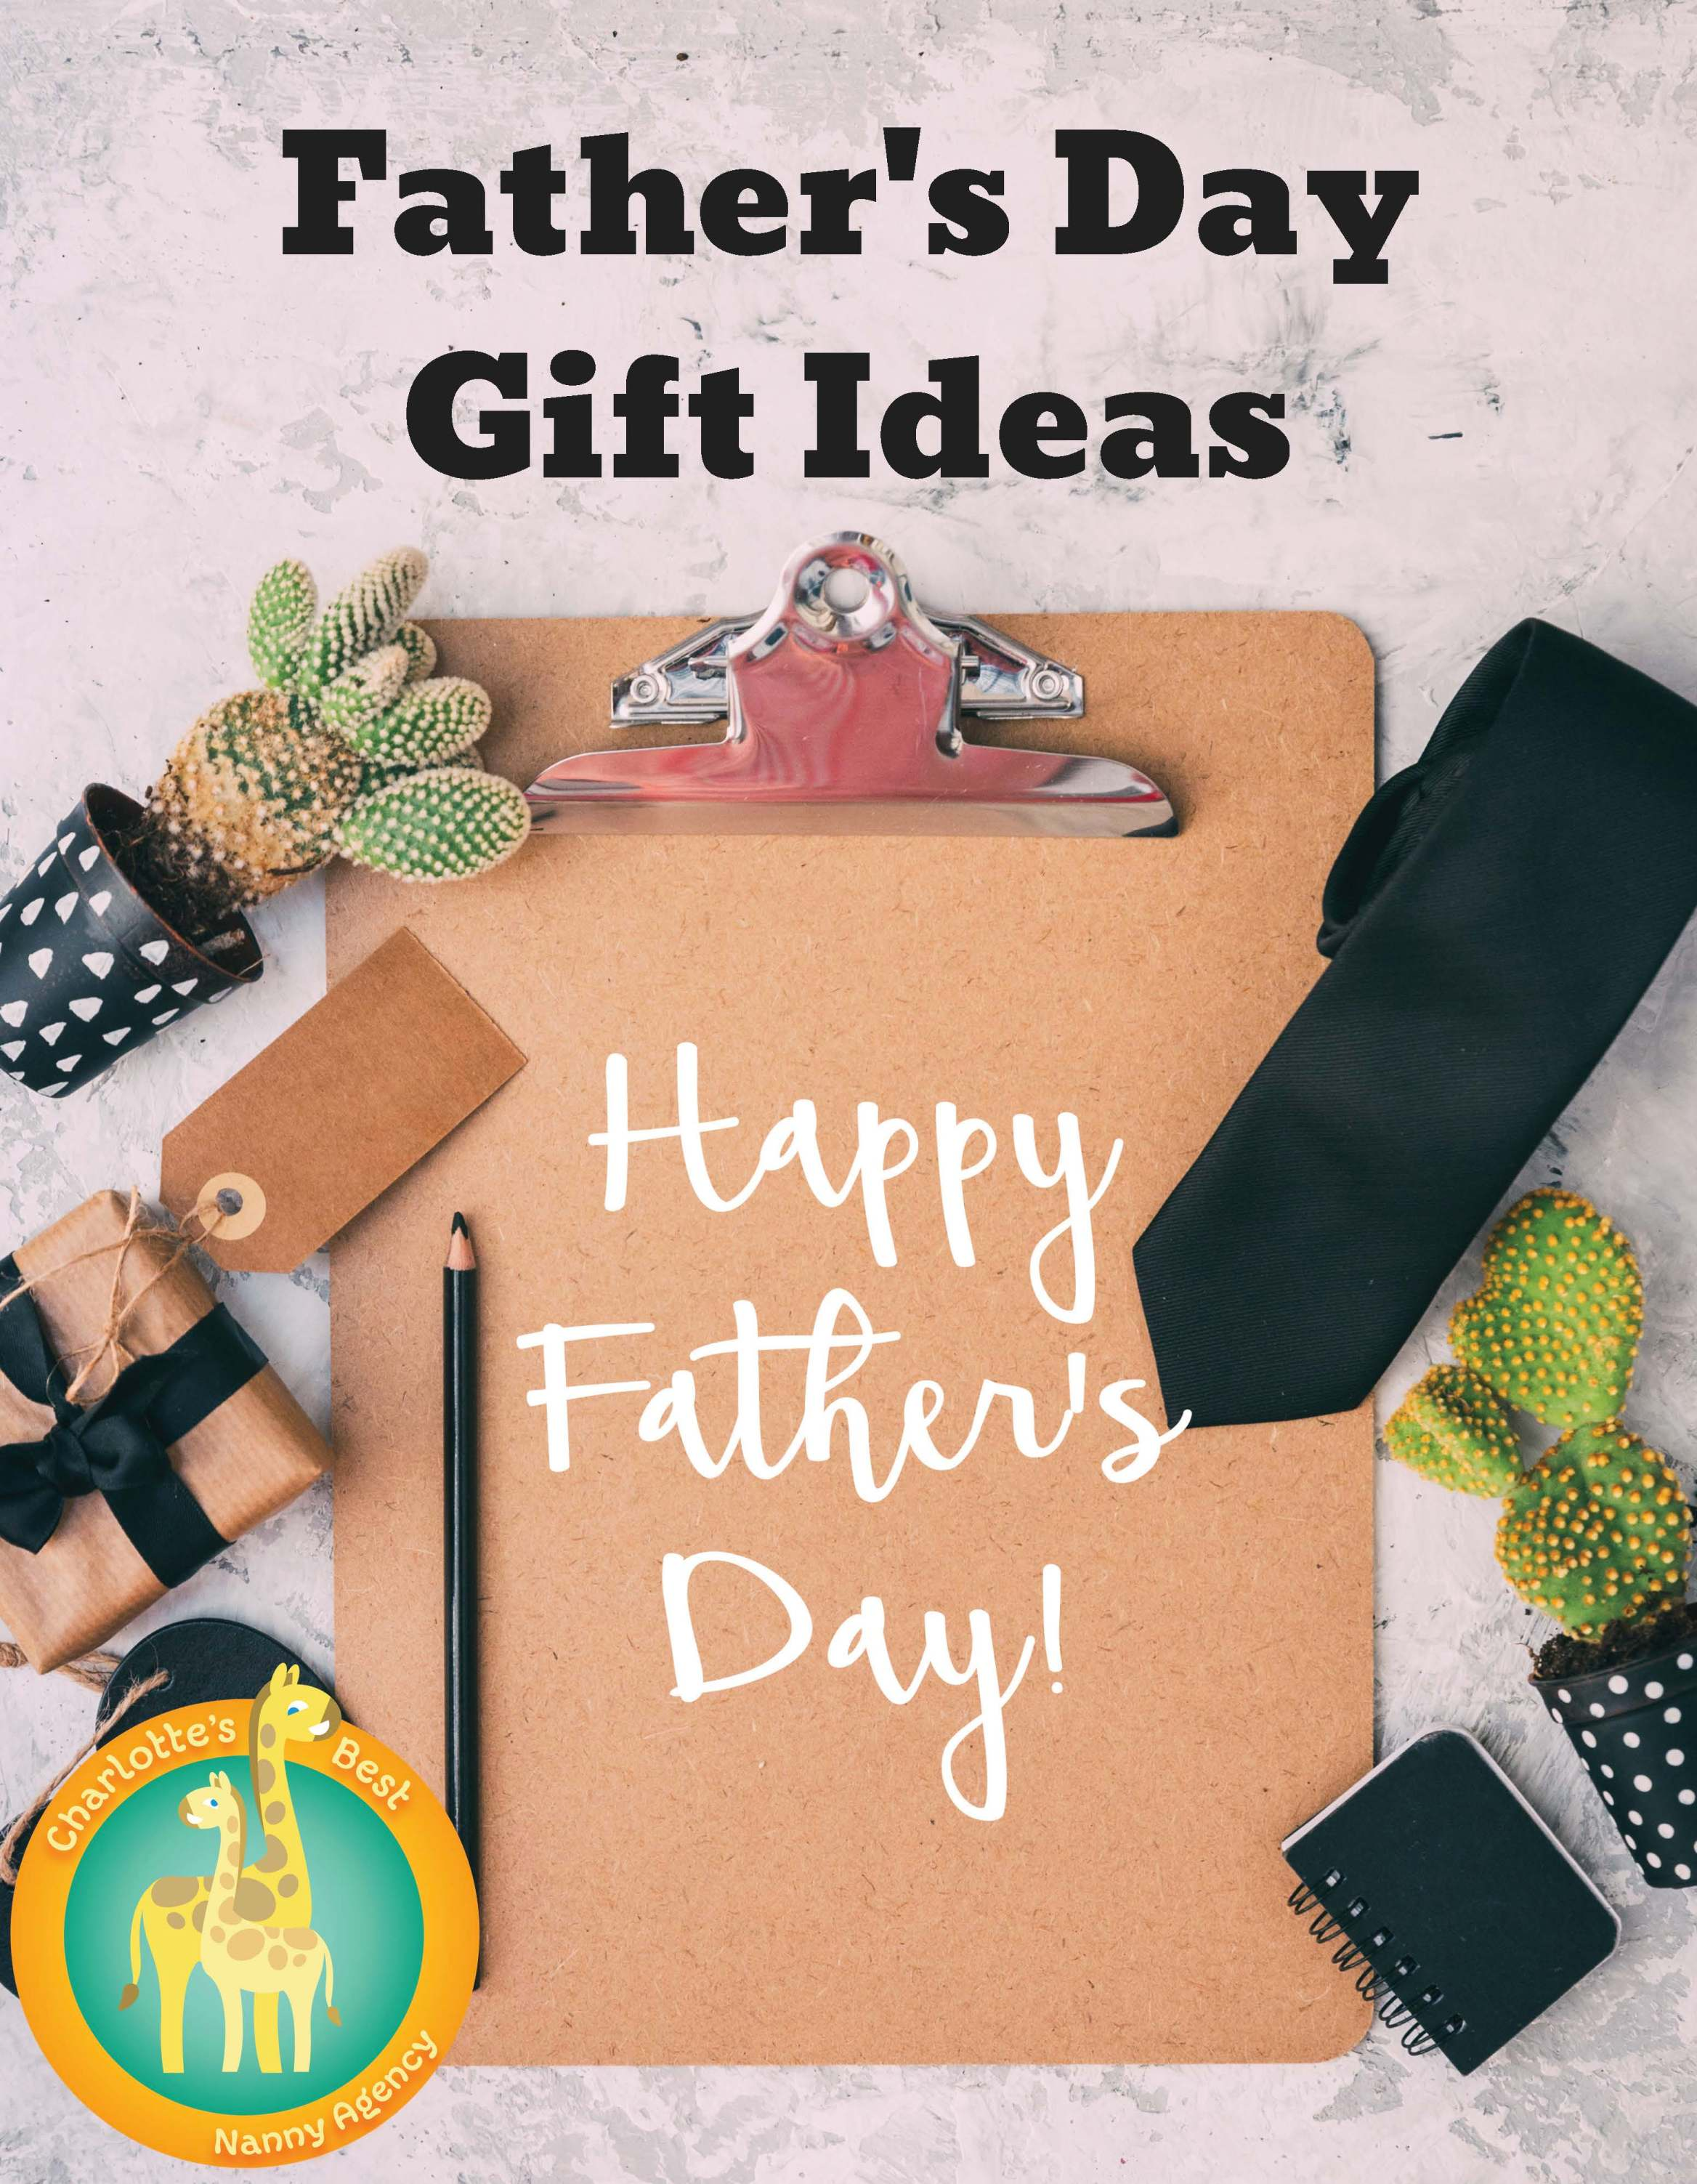 2021 Father's Day Gifts for Dad   Gift ideas For Men